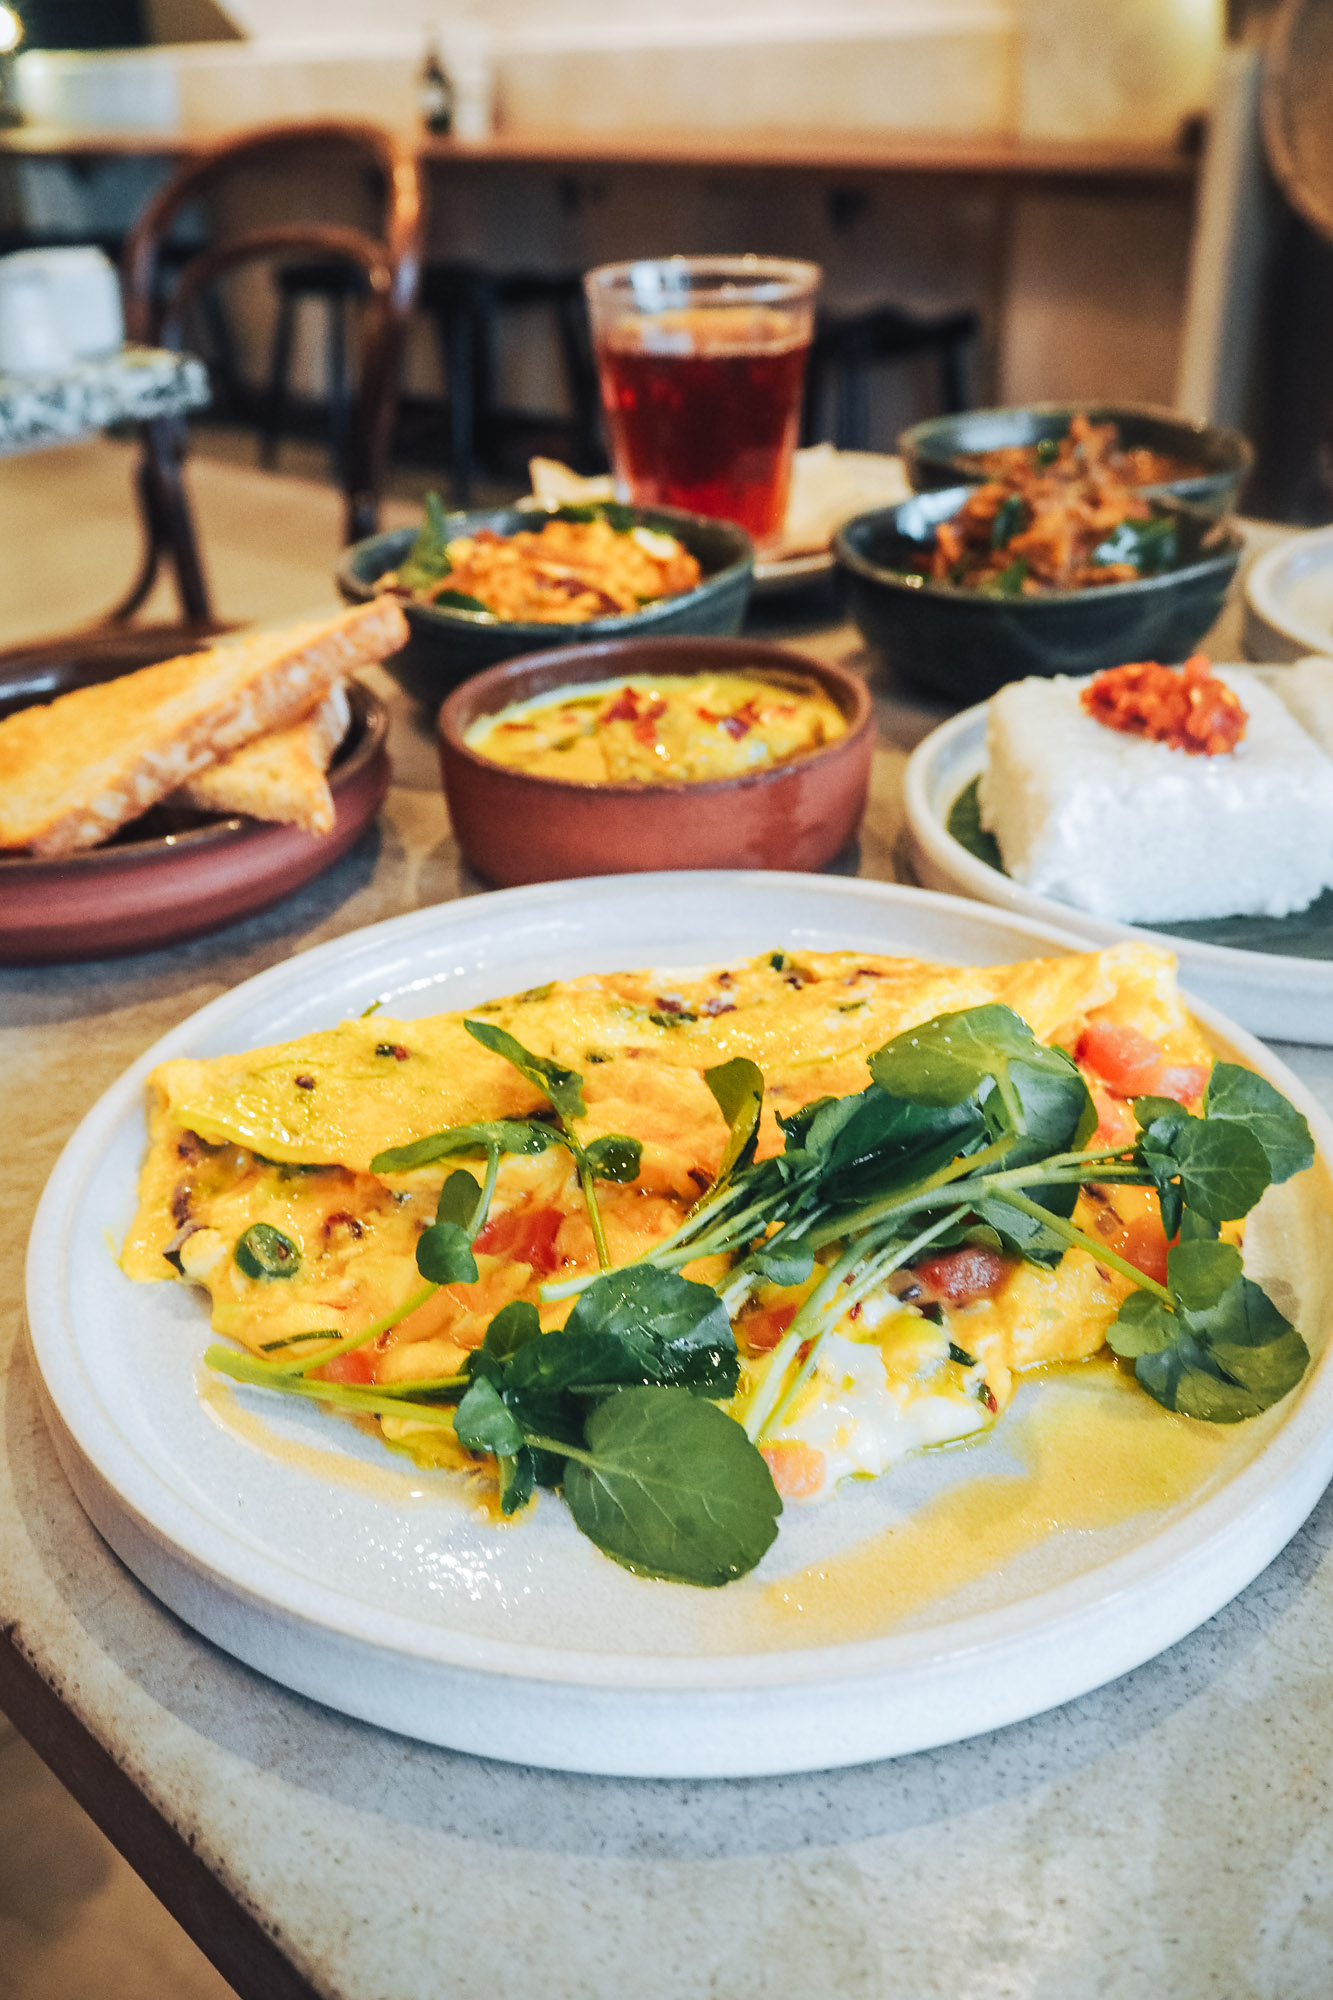 Sri Lankan omelette with sourdough toast and an array of sides for brunch at Kolamba in Soho, London